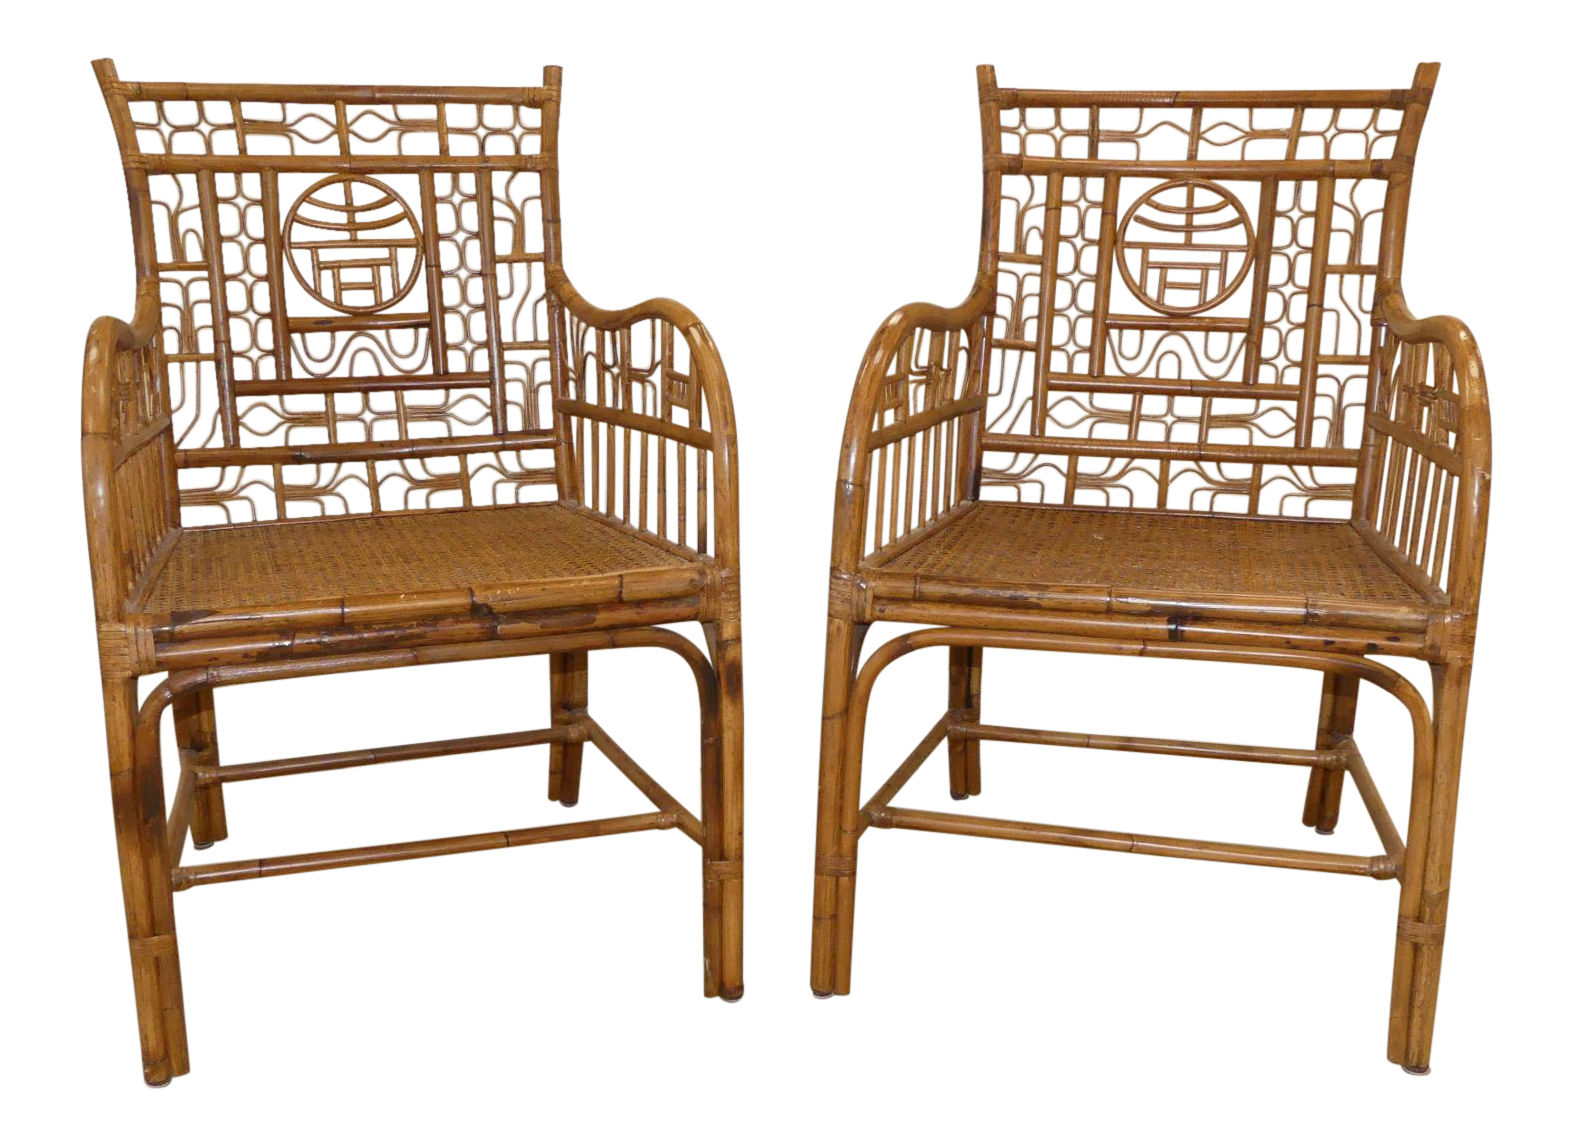 century-chair-company-chinese-chippendale-bamboorattan-armchairs 000a.jpg